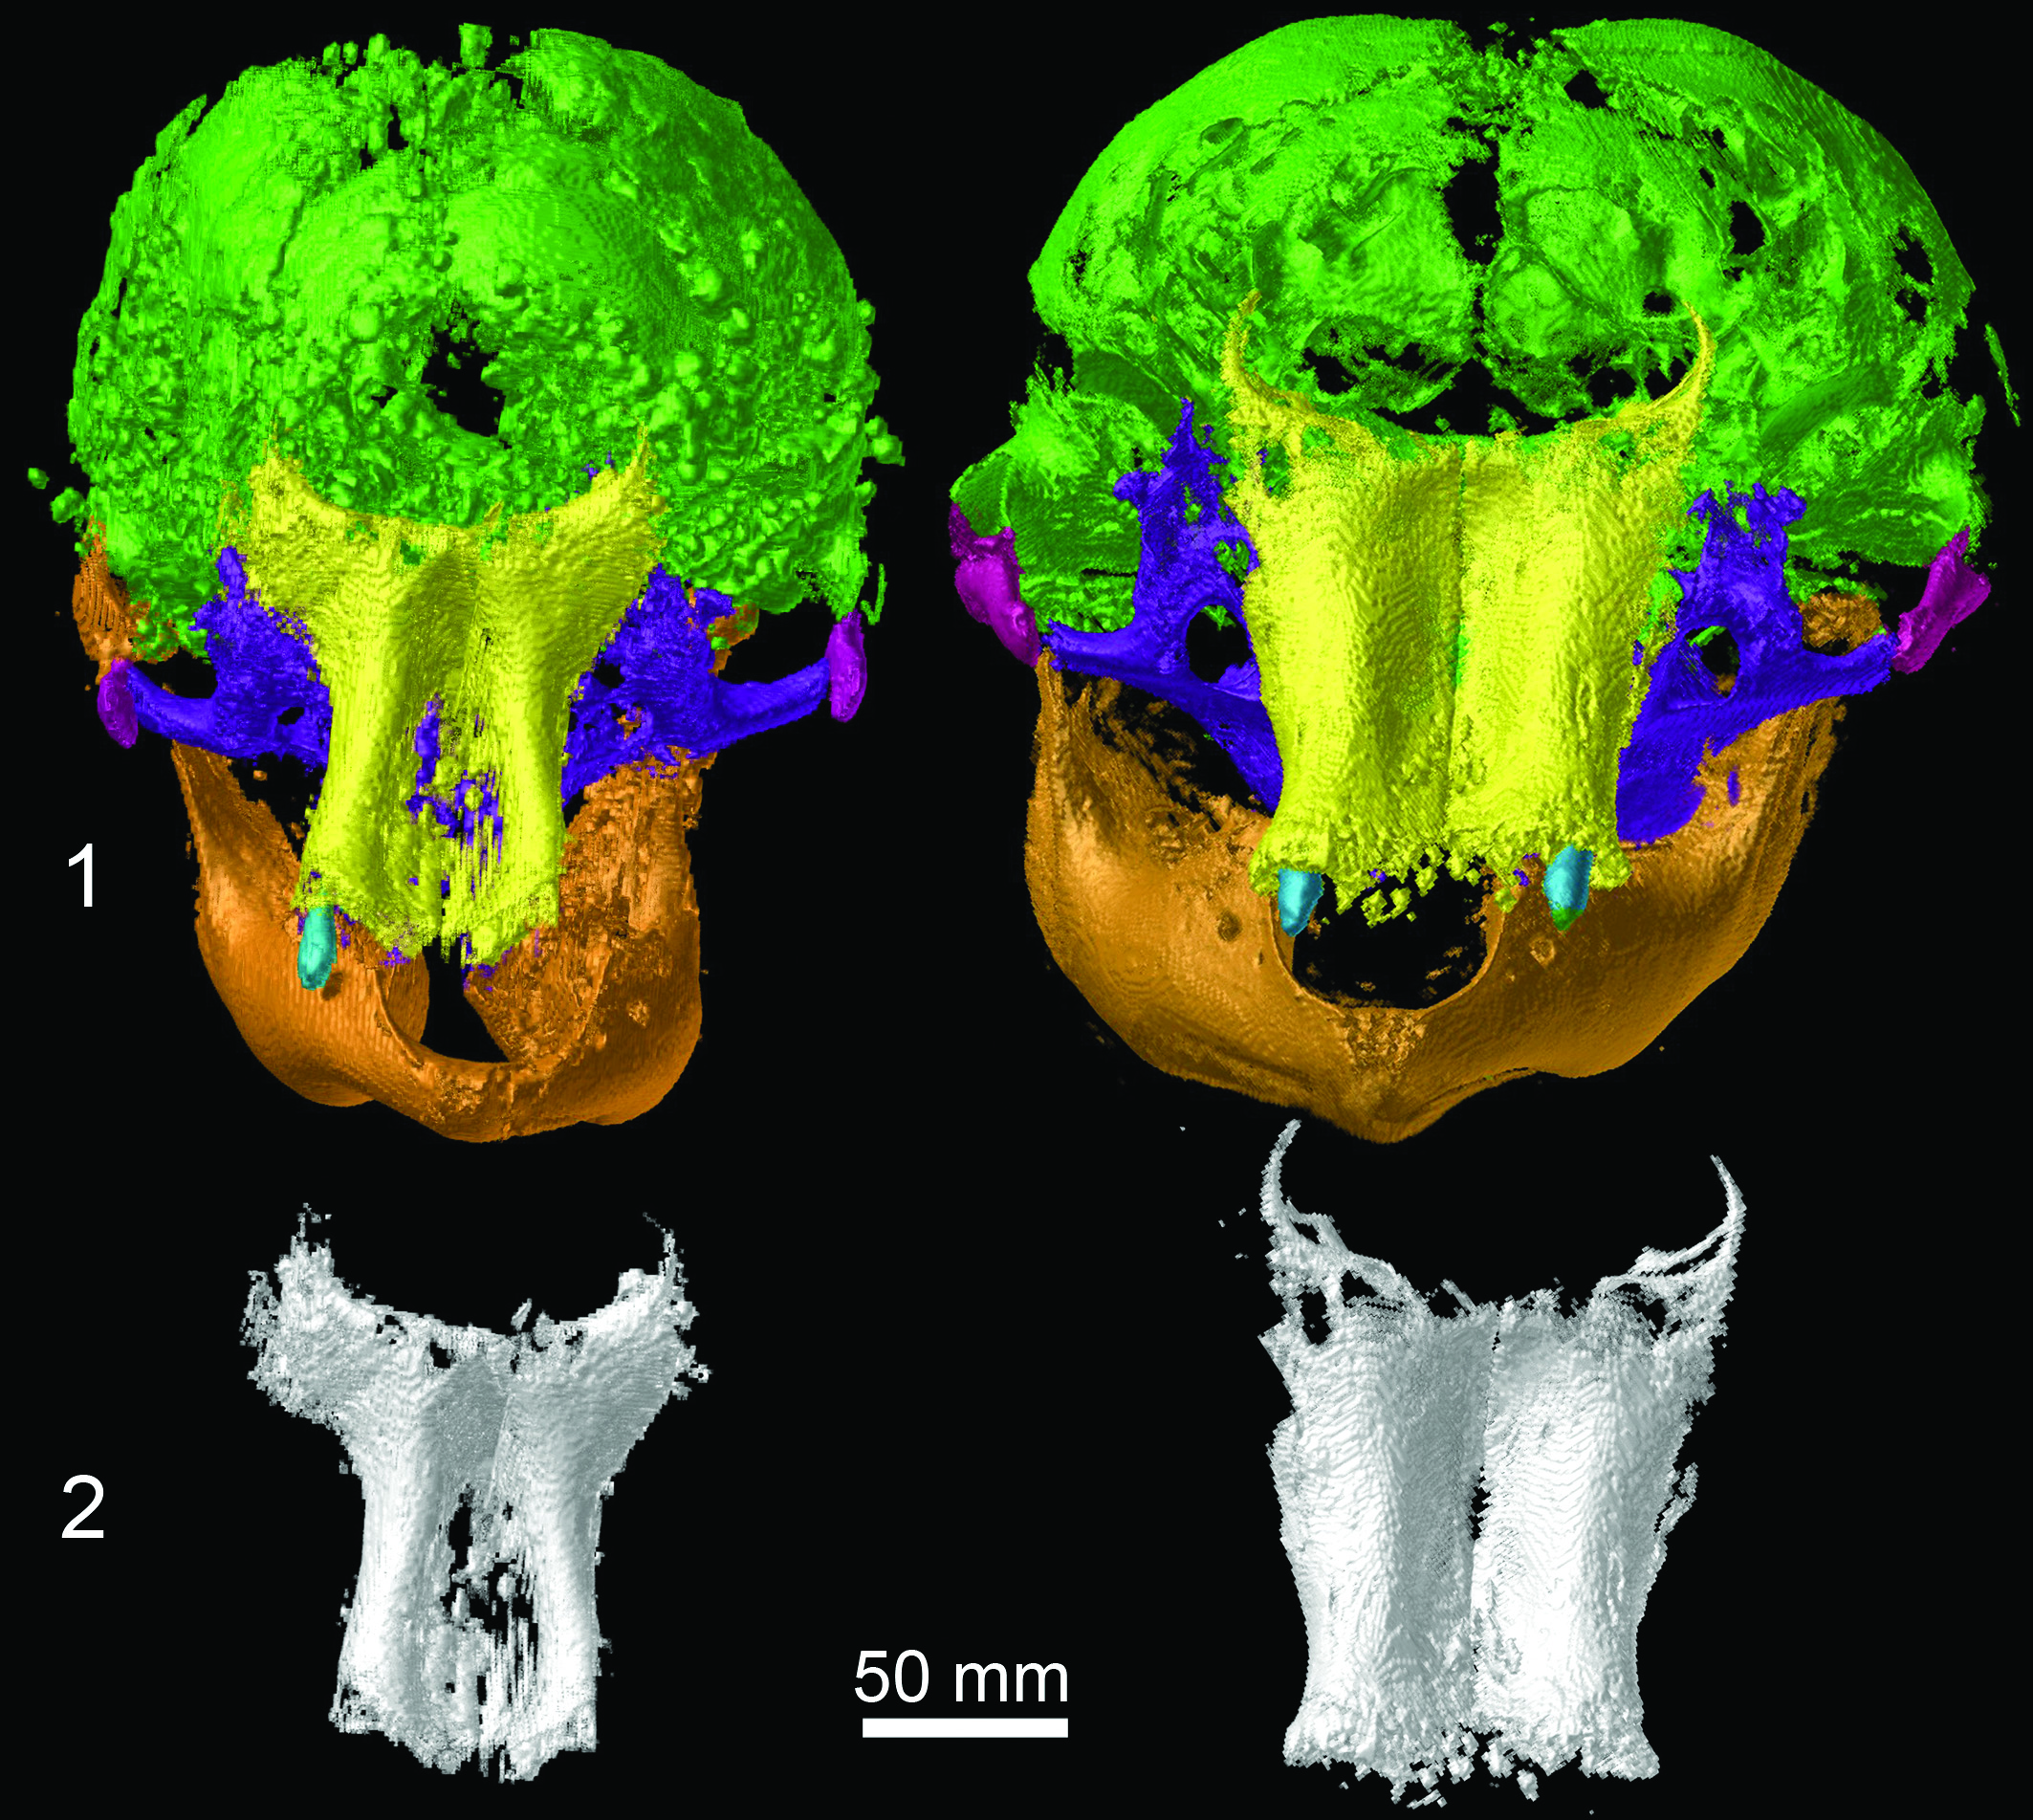 CT images showing a side-by-side comparison of skulls from Lyuba (left) and Khroma, with bones of the front of the skull shown below. Image credit: University of Michigan Museum of Paleontology